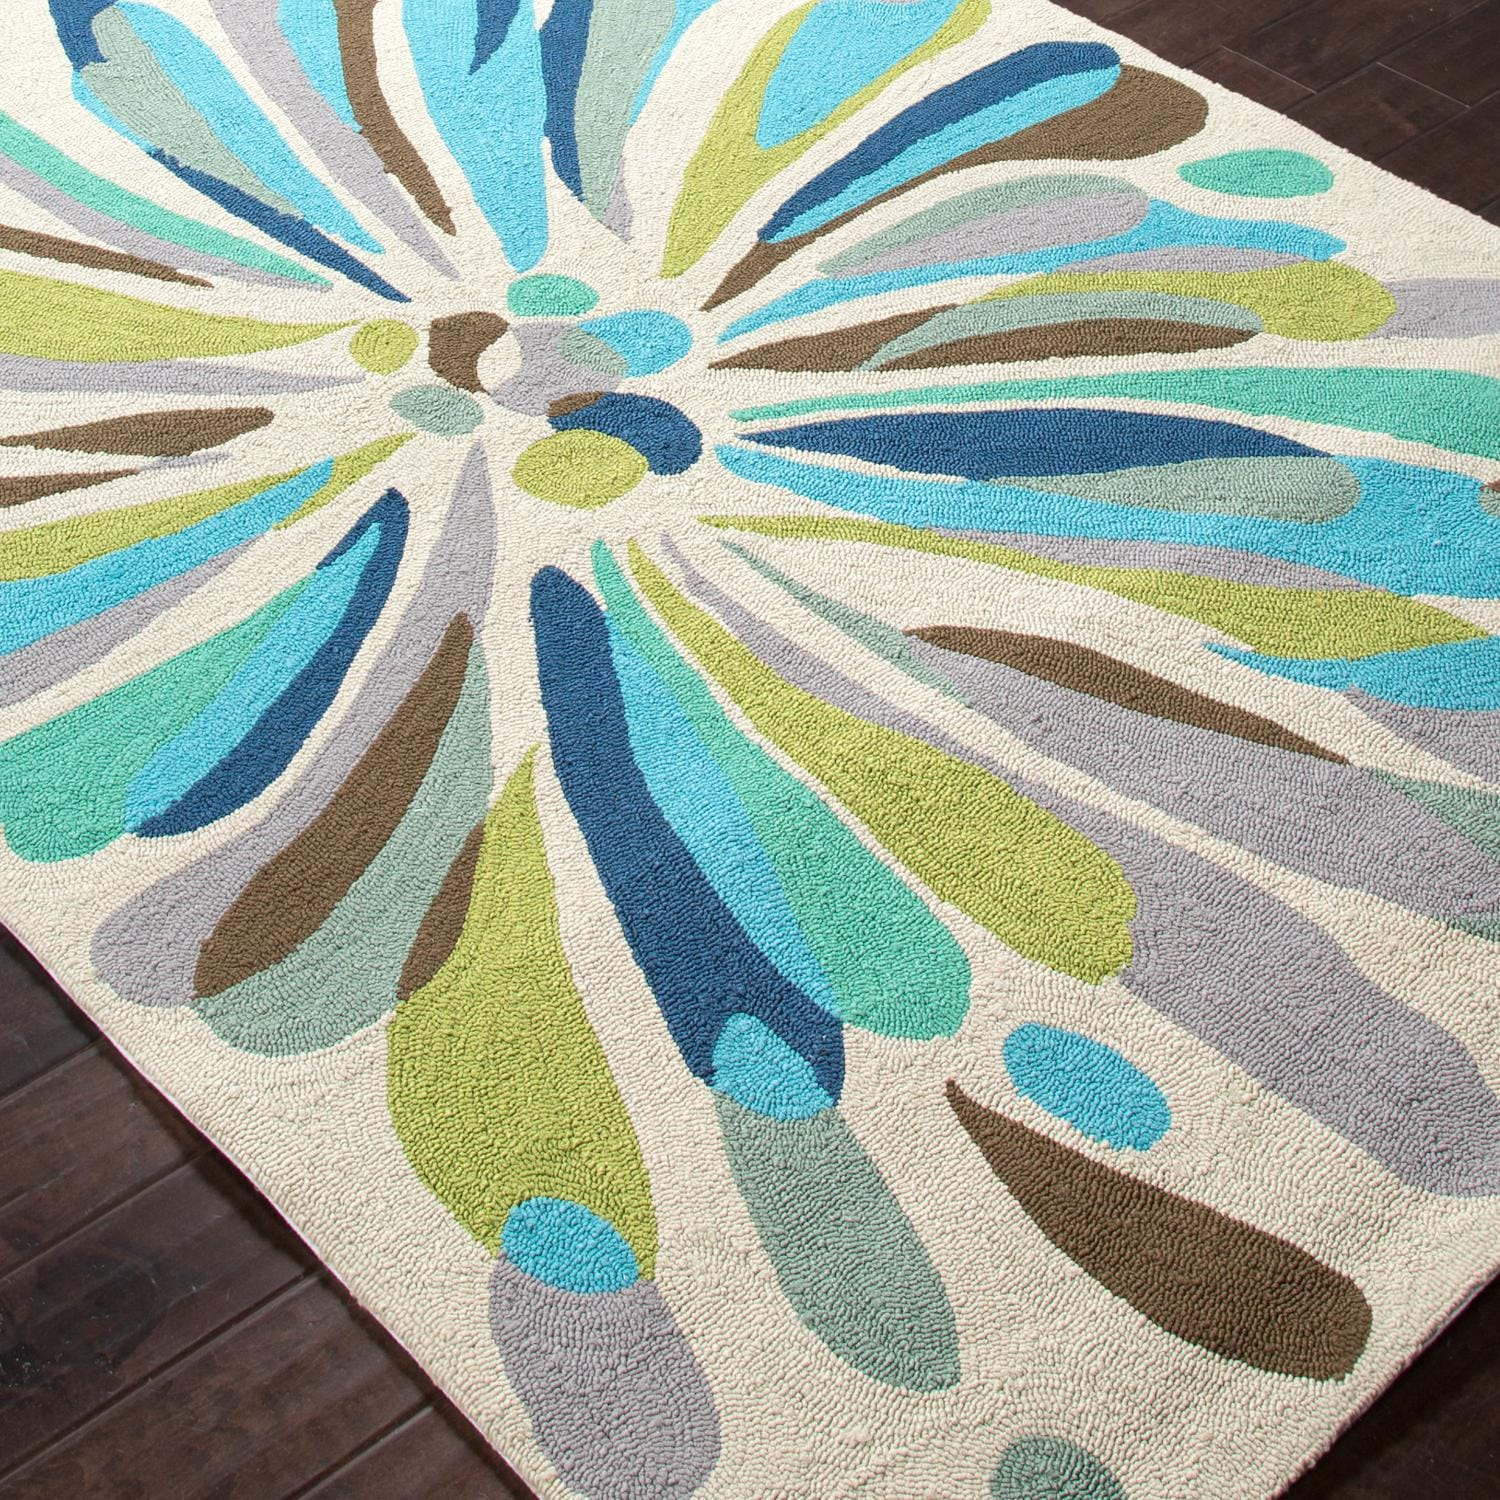 Jaipur Rugs Colours Flowerburst 2 X 3 Indoor/Outdoor Rug   Angle View